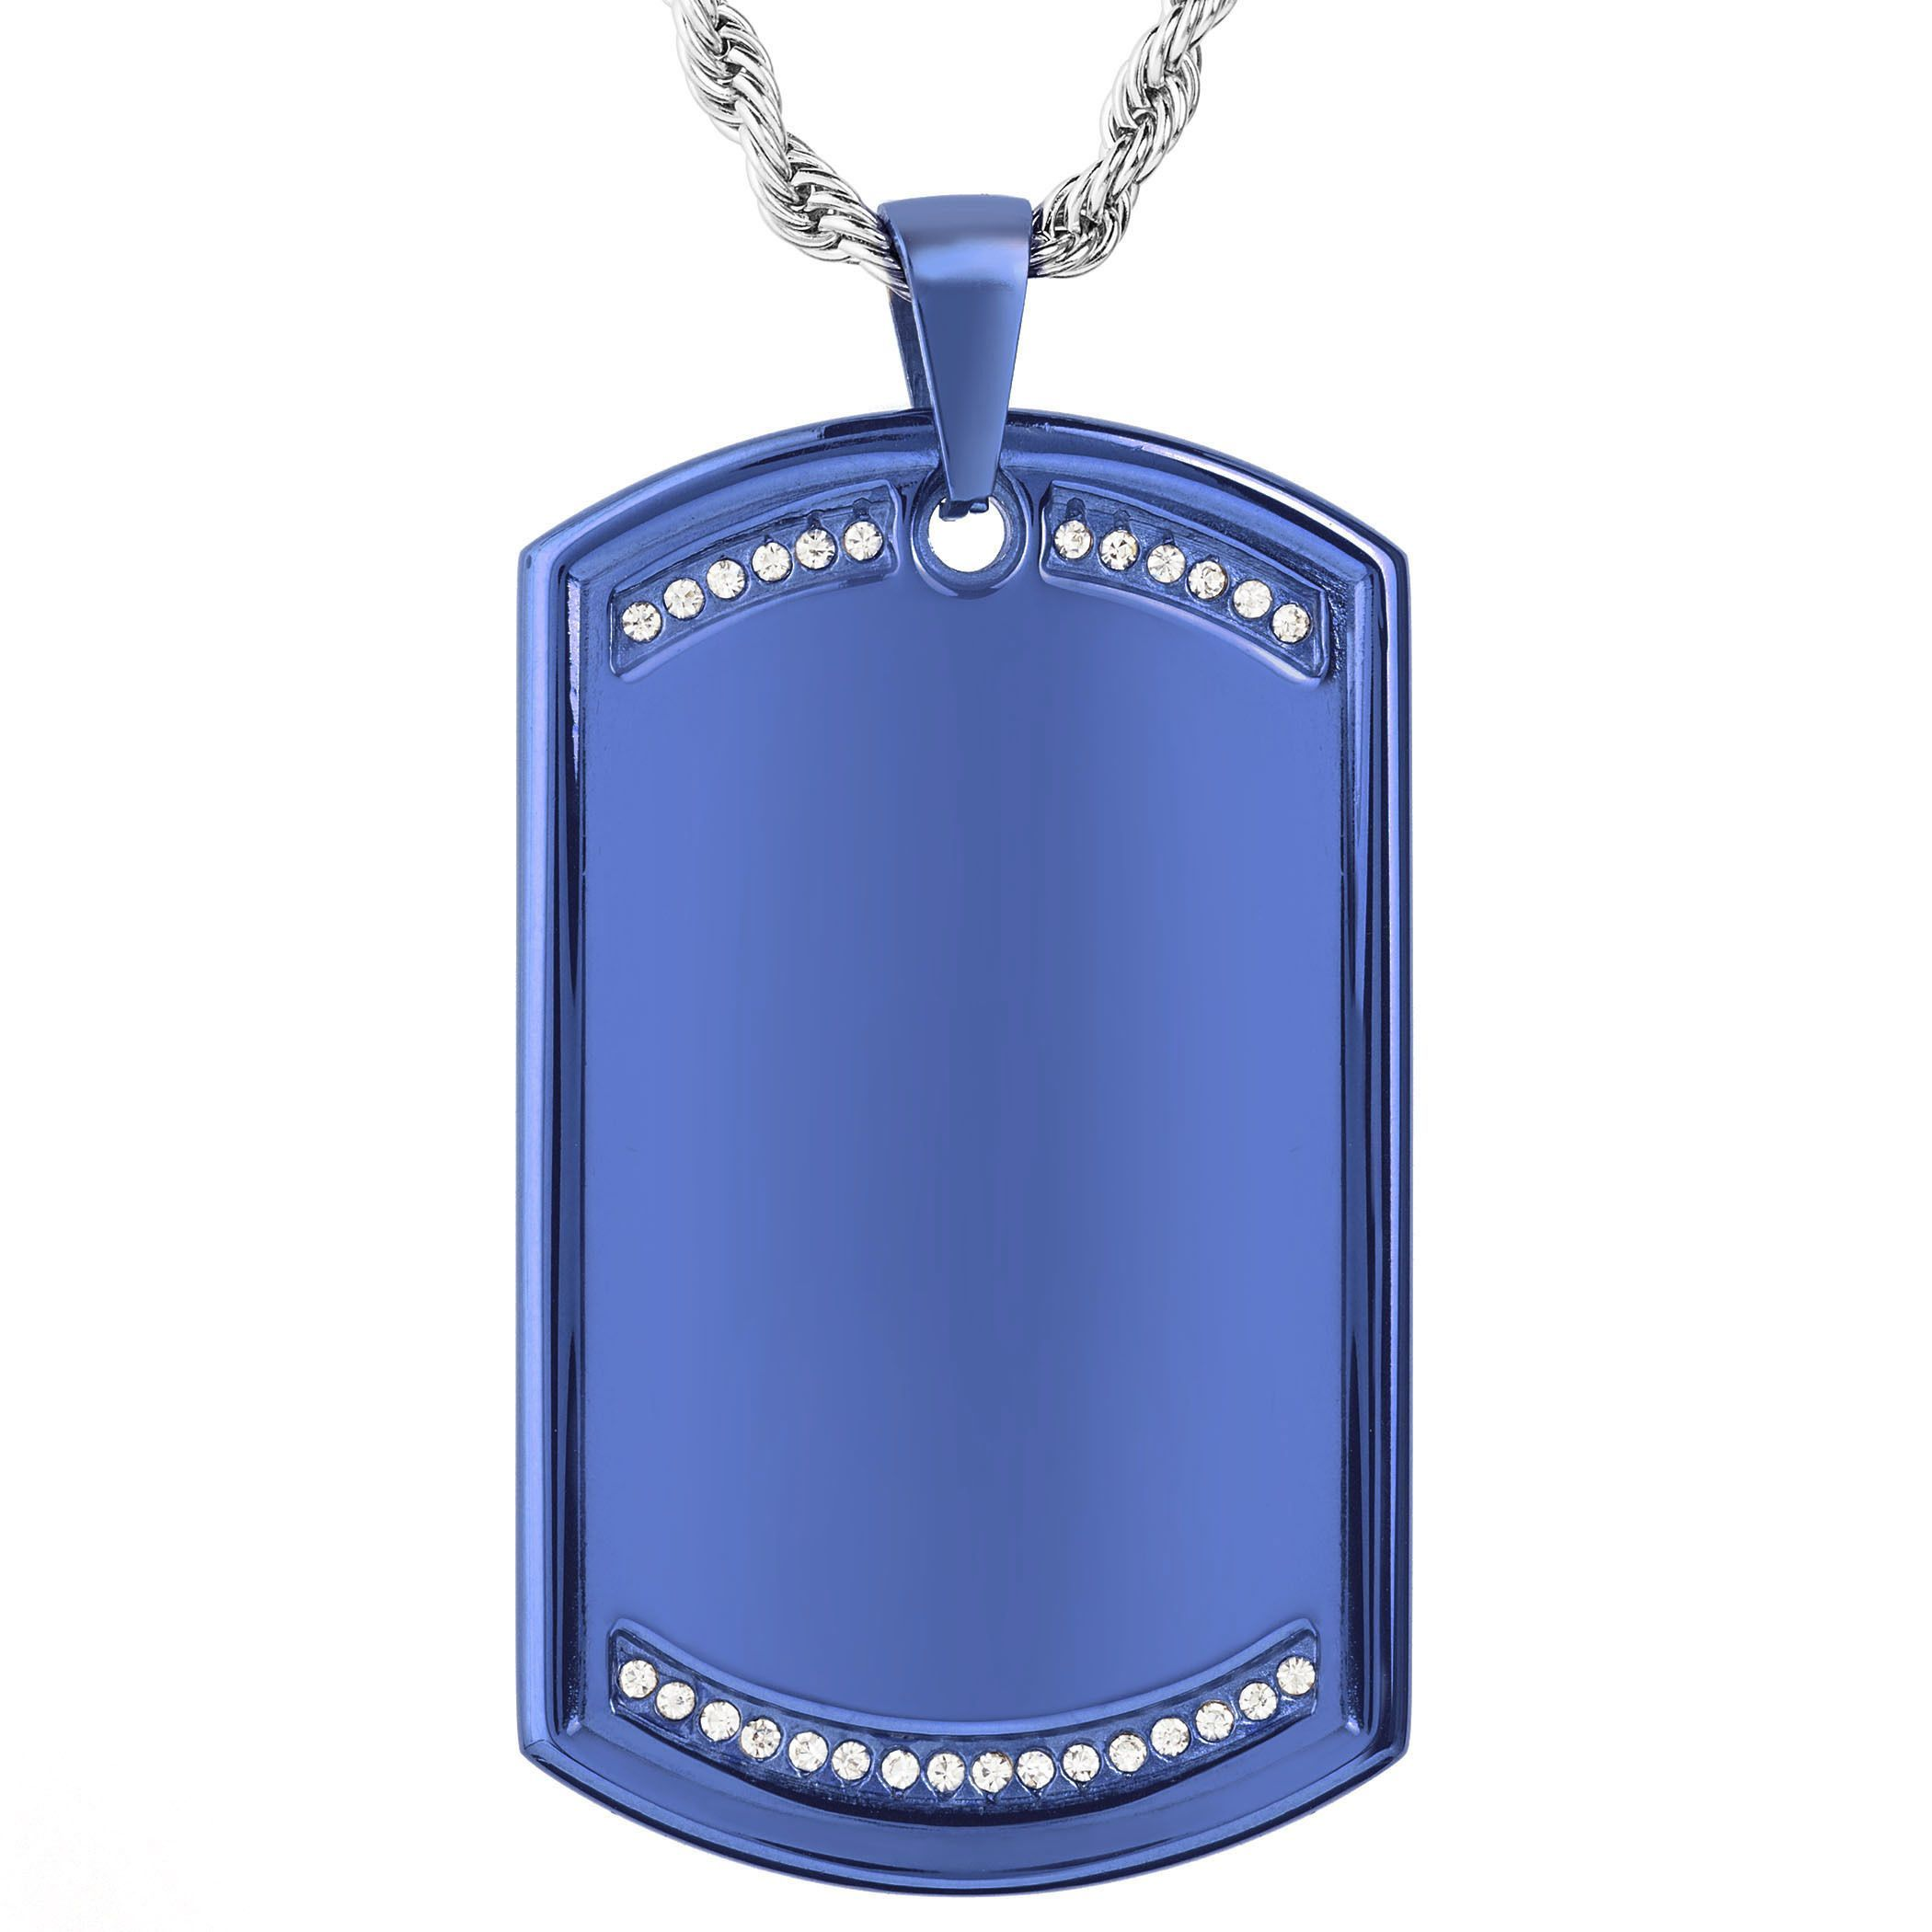 West Coast Jewelry Men's Stainless Steel Cubic Zirconia Dog Tag Pendant Necklace